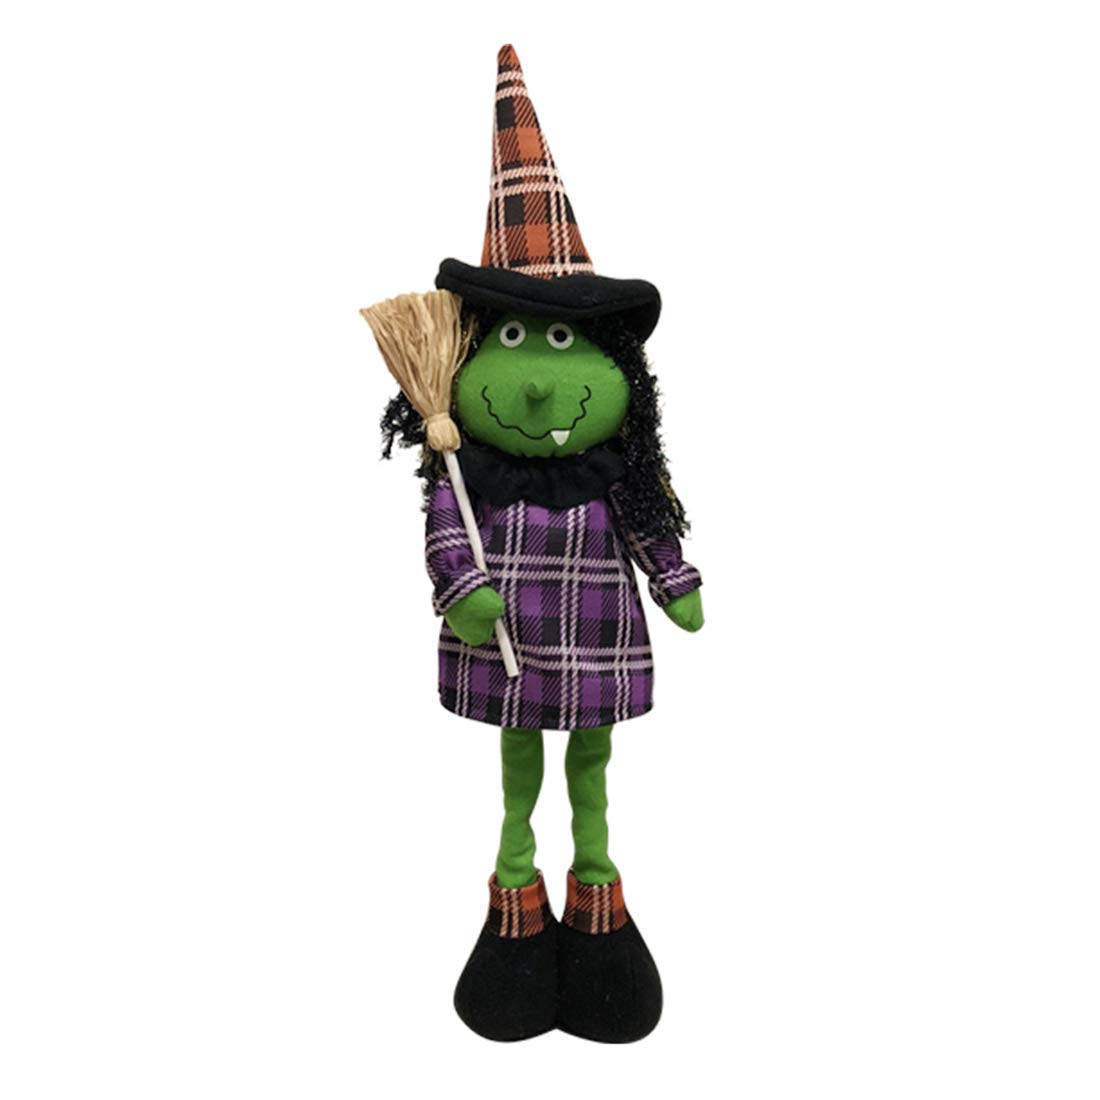 Aitey Halloween Dolls, Stretchable Decor Witch Plush Doll, Halloween Party Supplies Favors for Kids Gift Home, Bedroom Ornaments